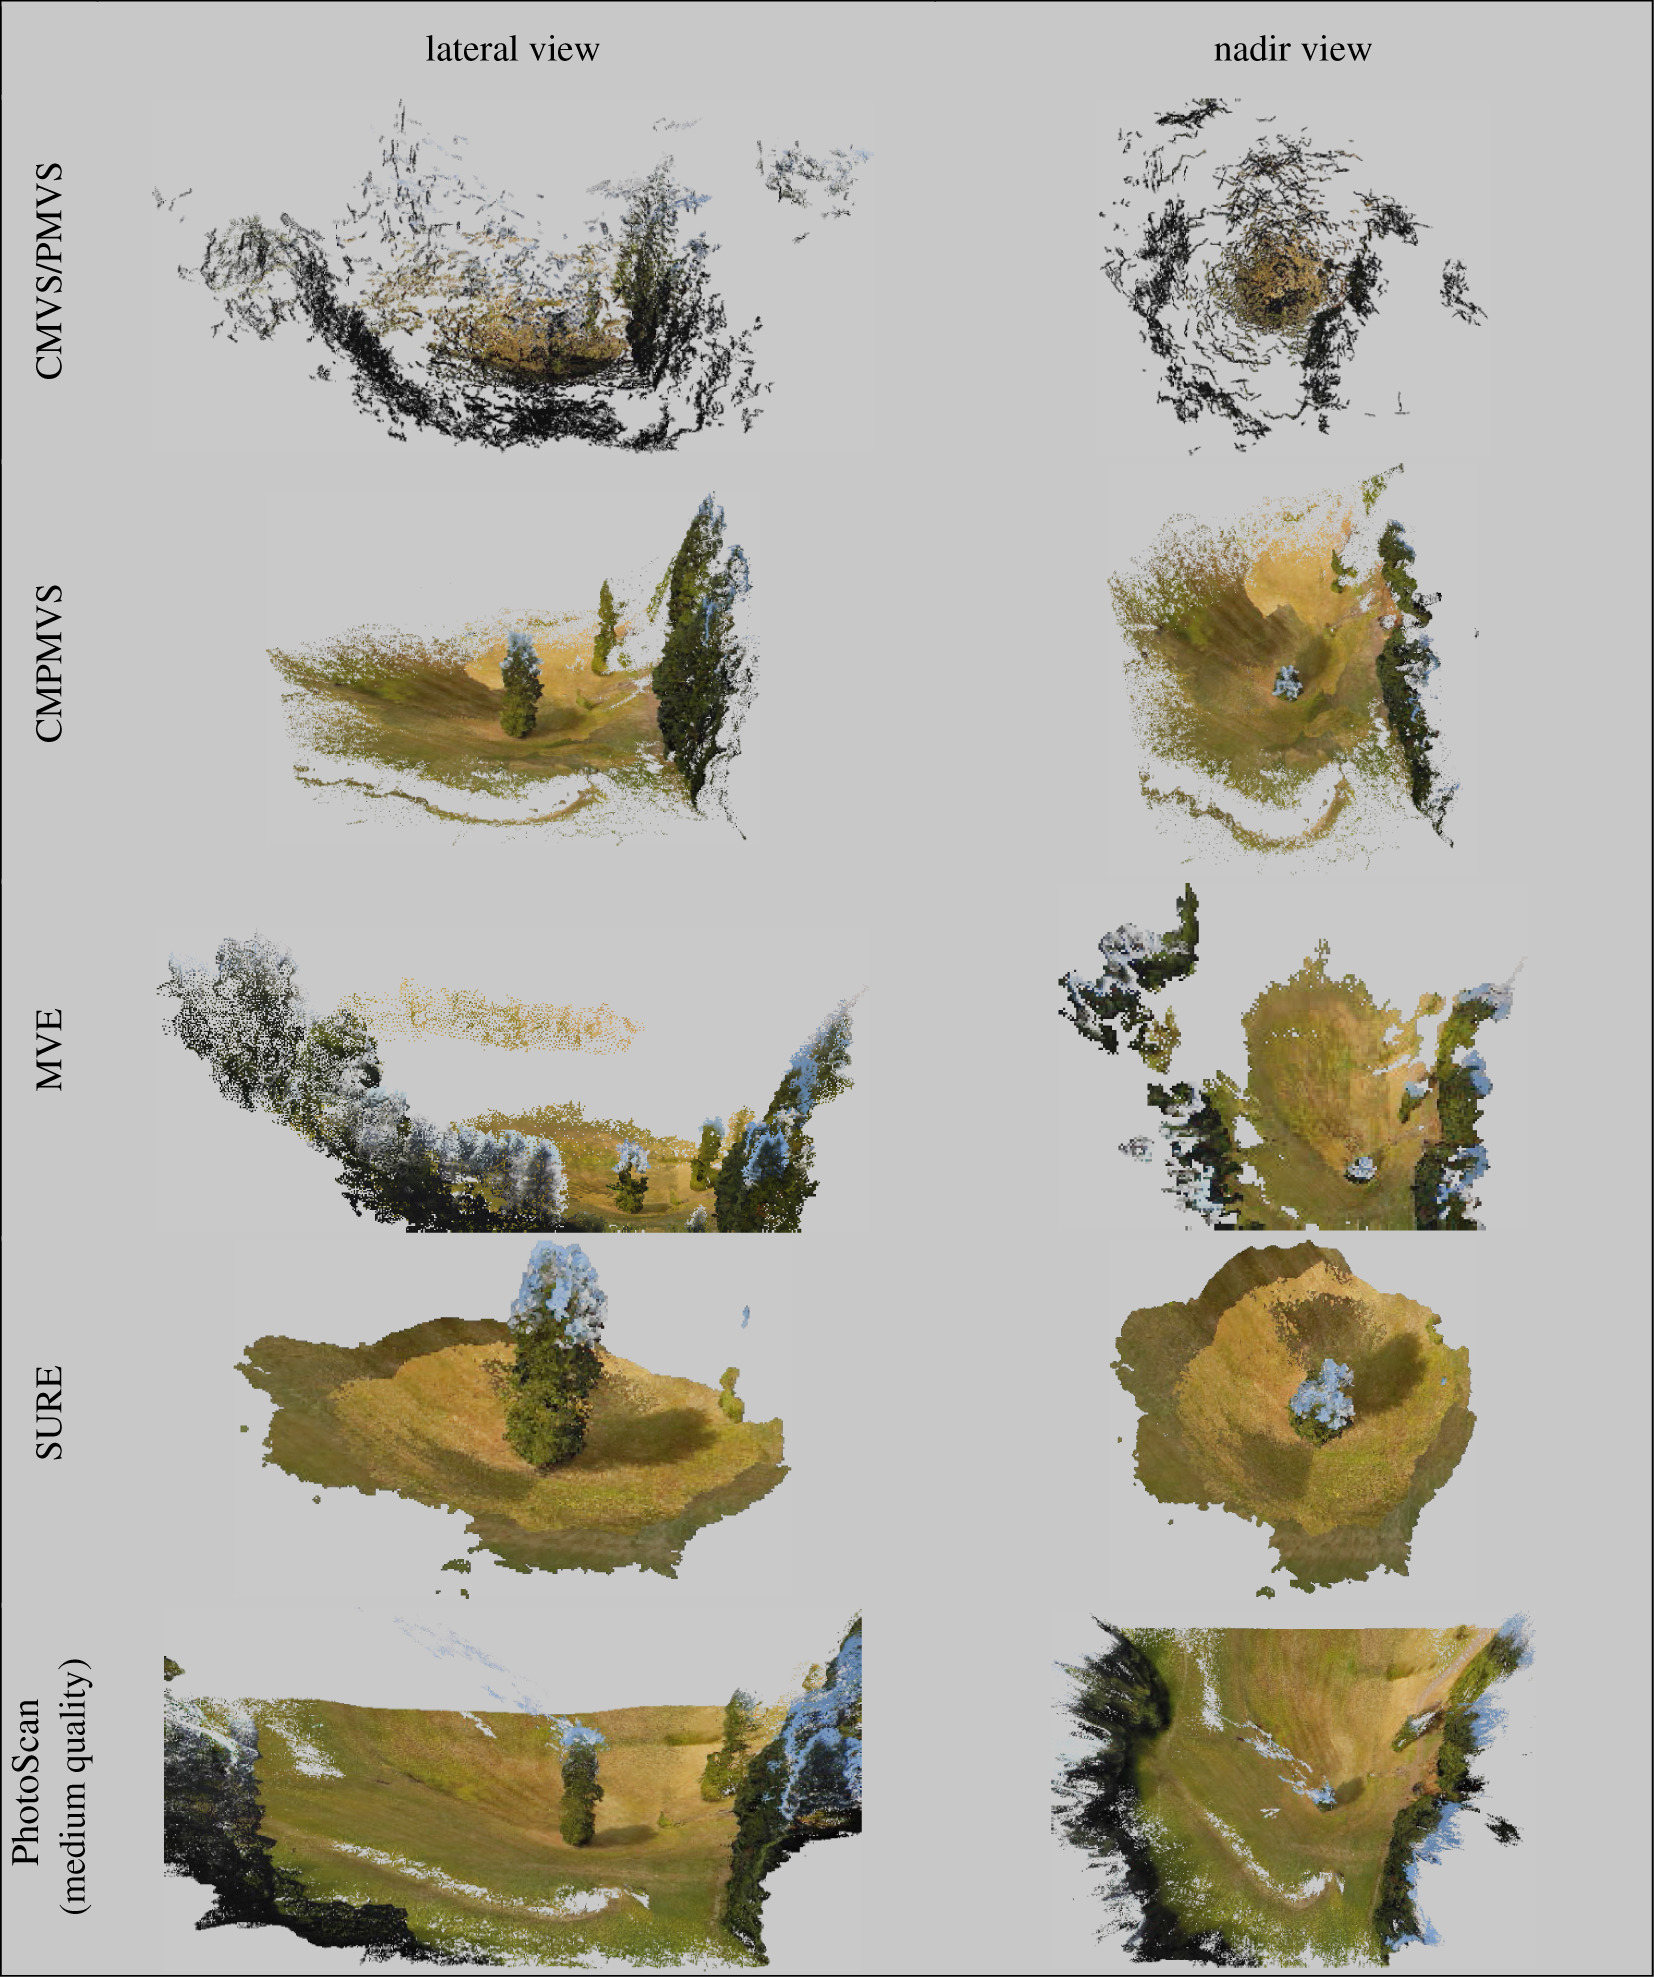 Intercomparison of photogrammetry software for three